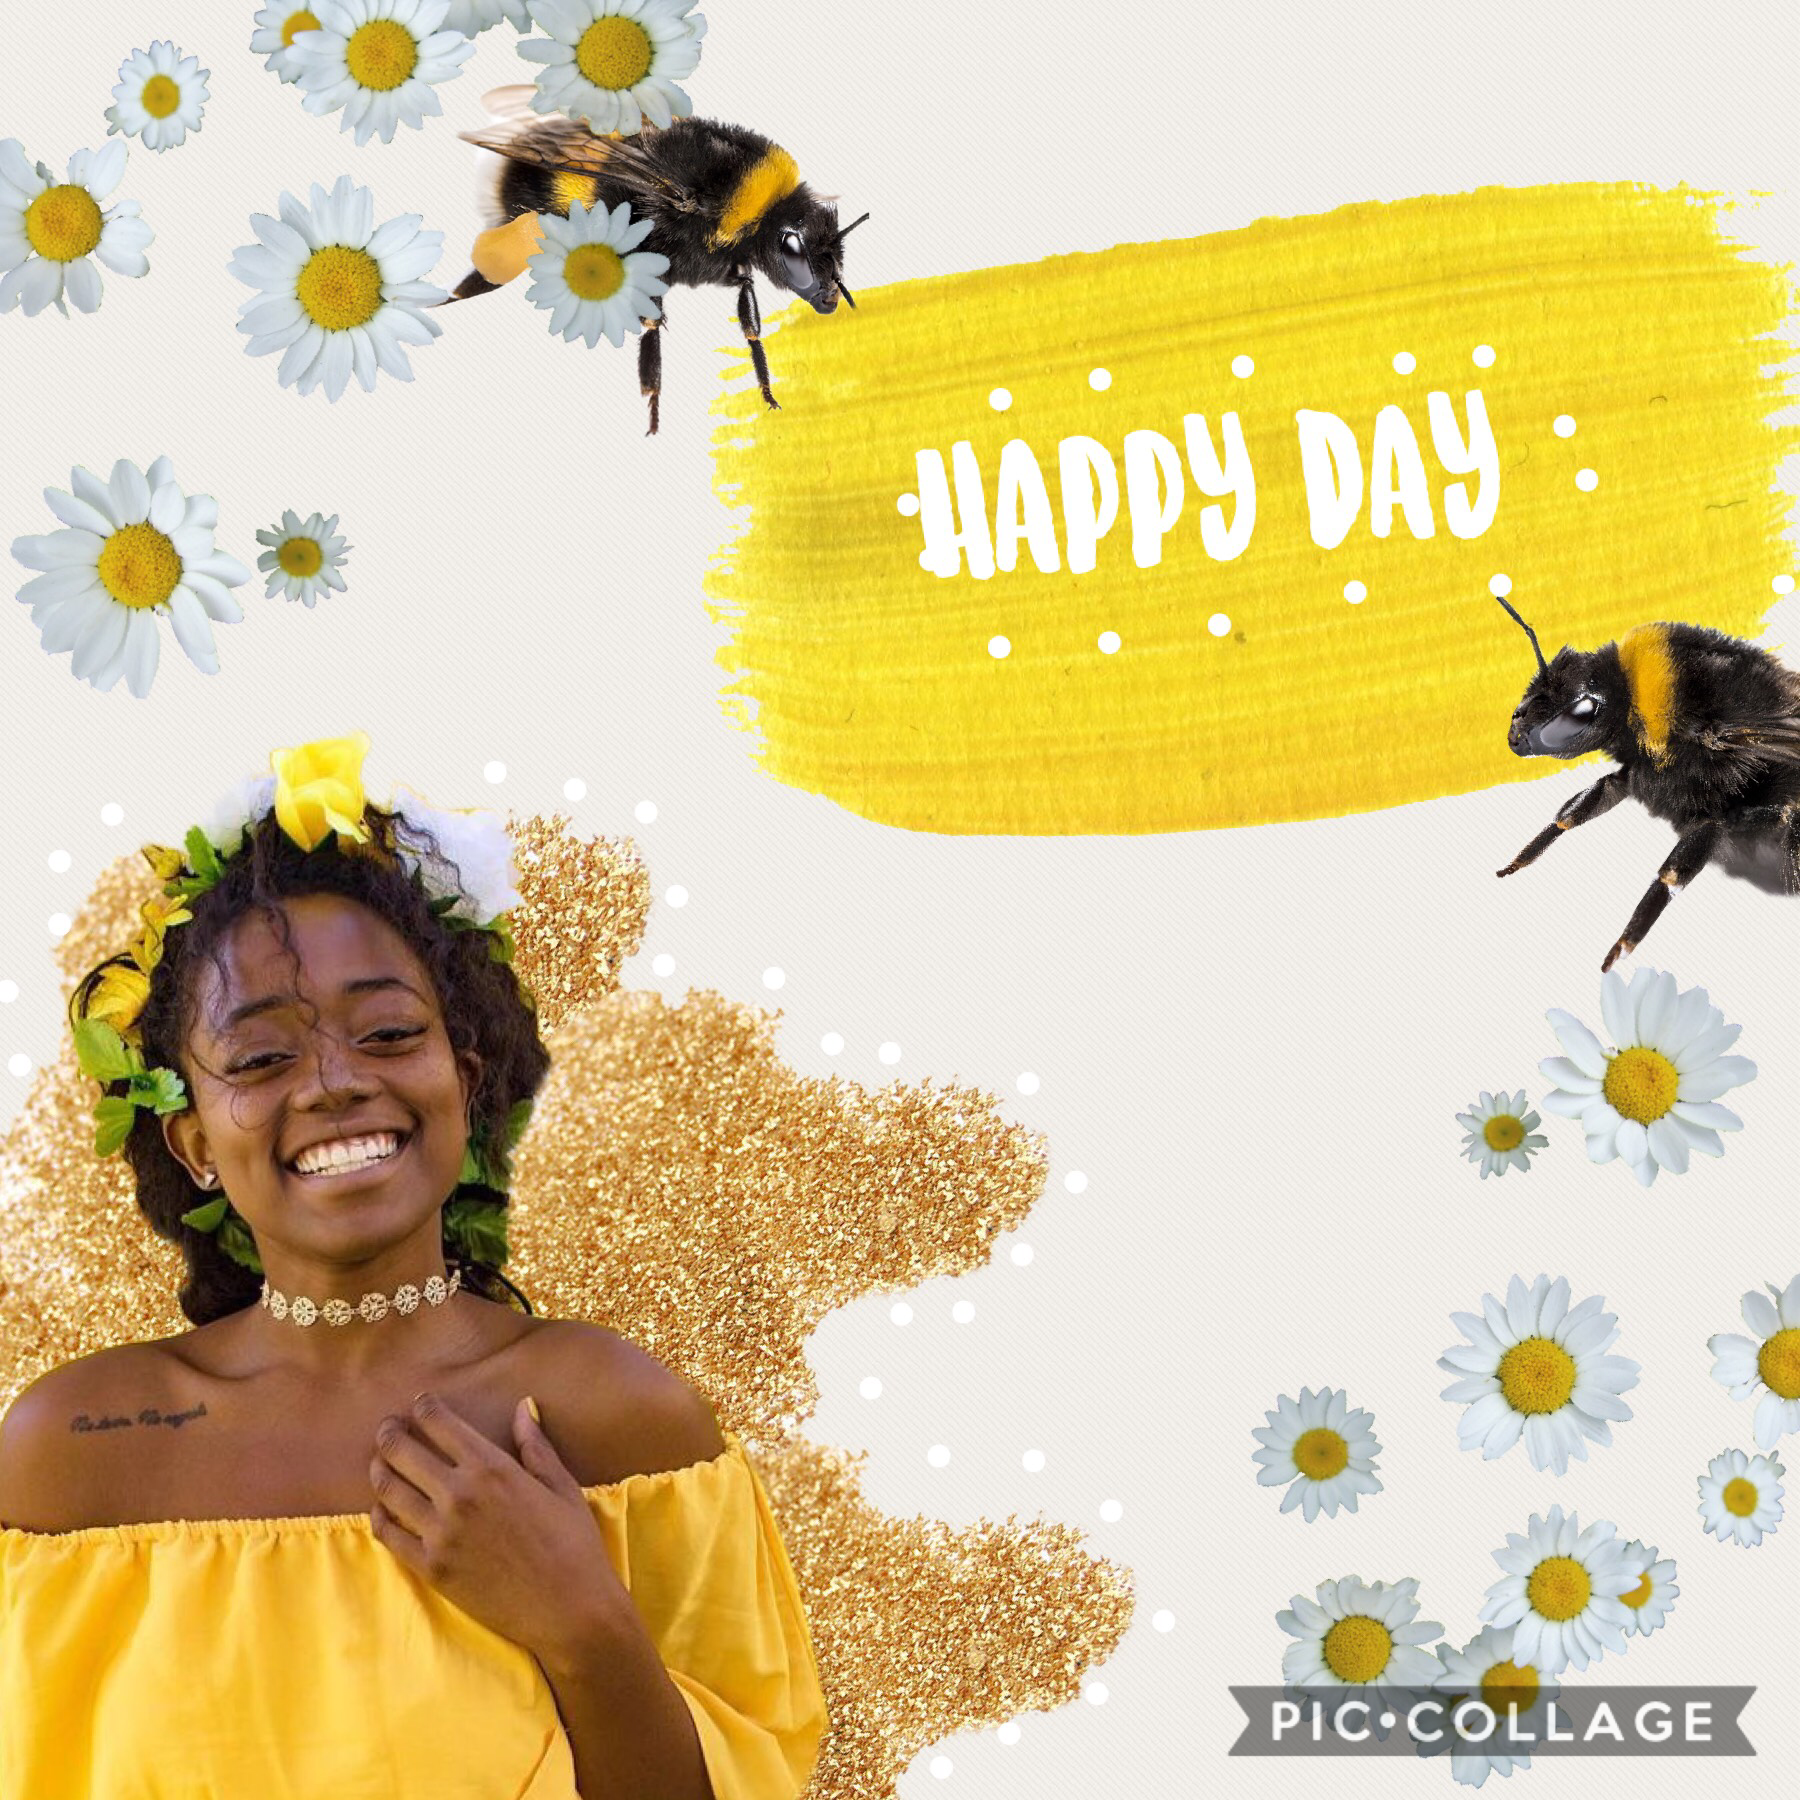 💛hApPy dAy 💛  Some more followers would make my day happy 😂